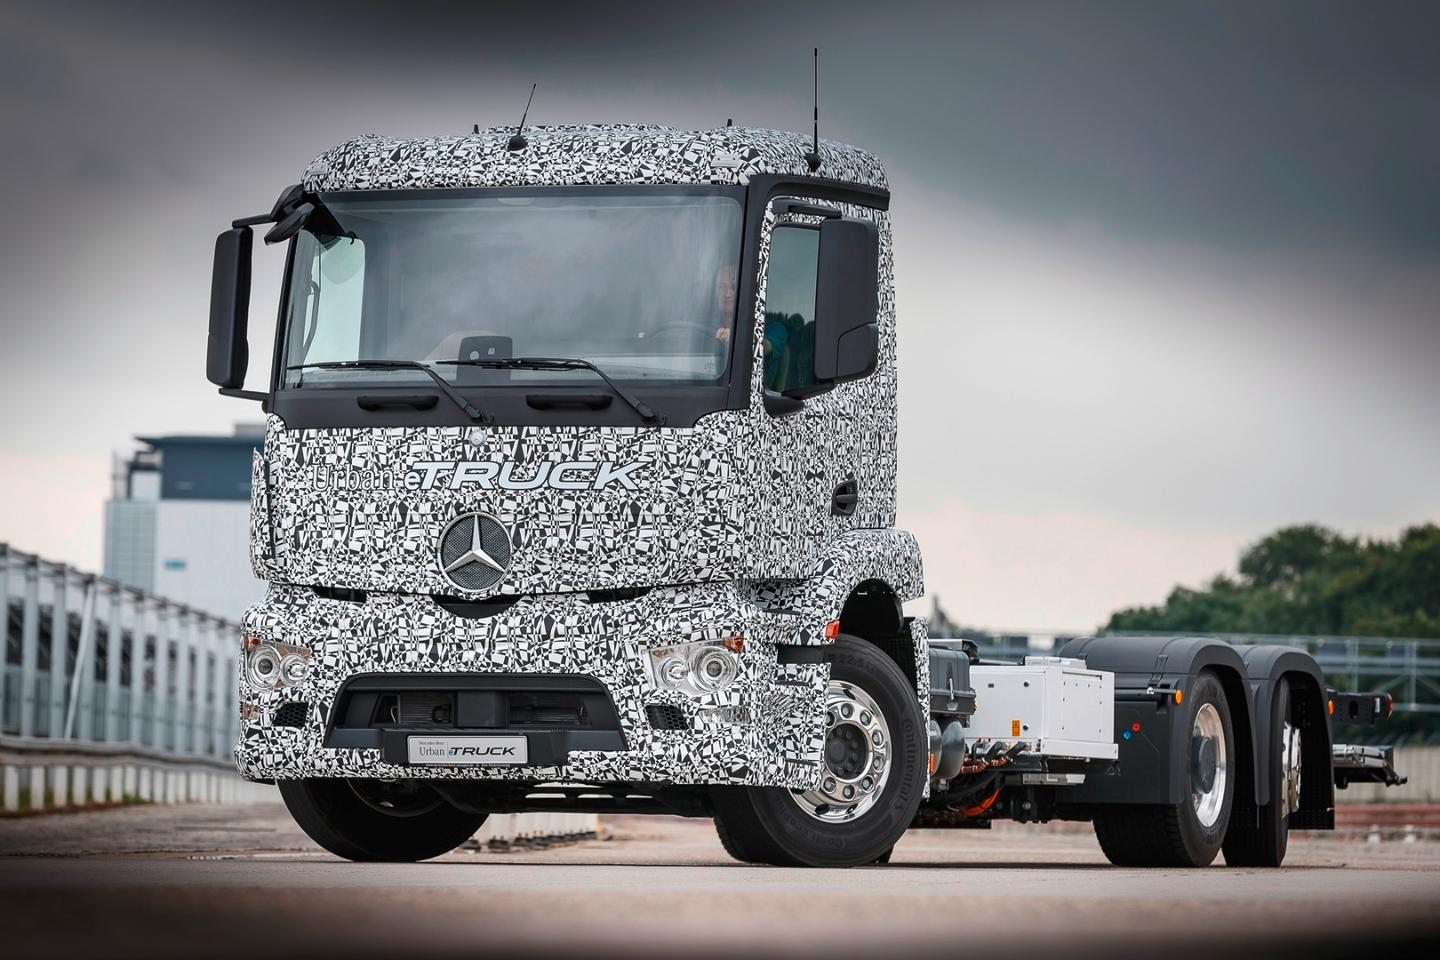 The Urban eTruck is based on a heavy-duty, three-axle short-radius Mercedes-Benz distribution truck